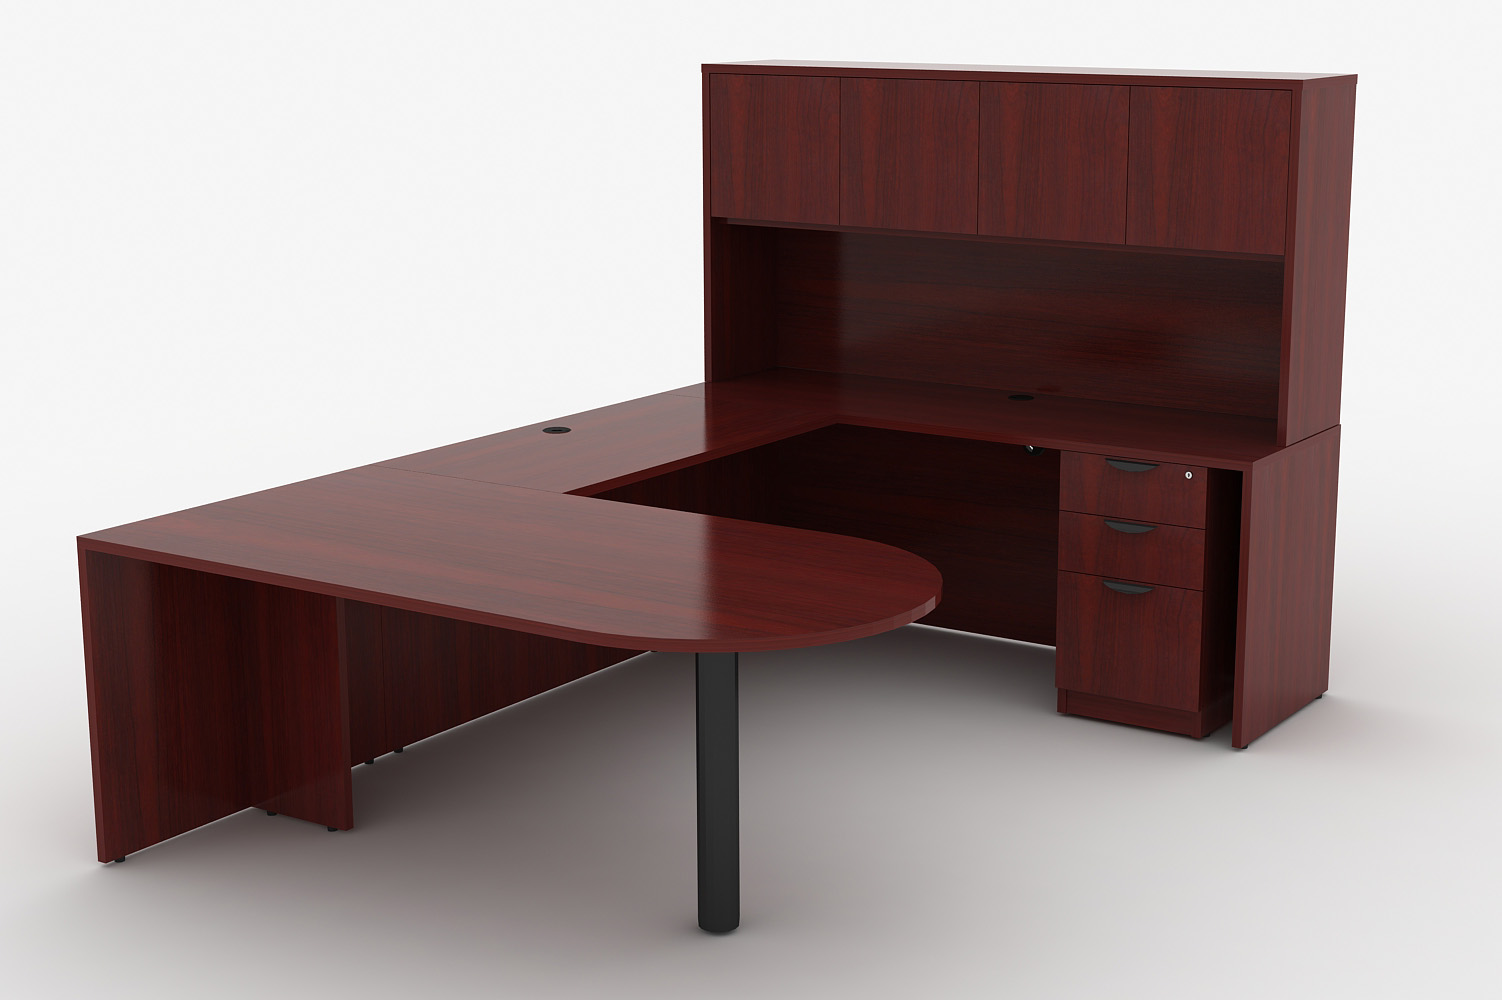 03 fice Desks EXECUTIVE DESK WITH HUTCH